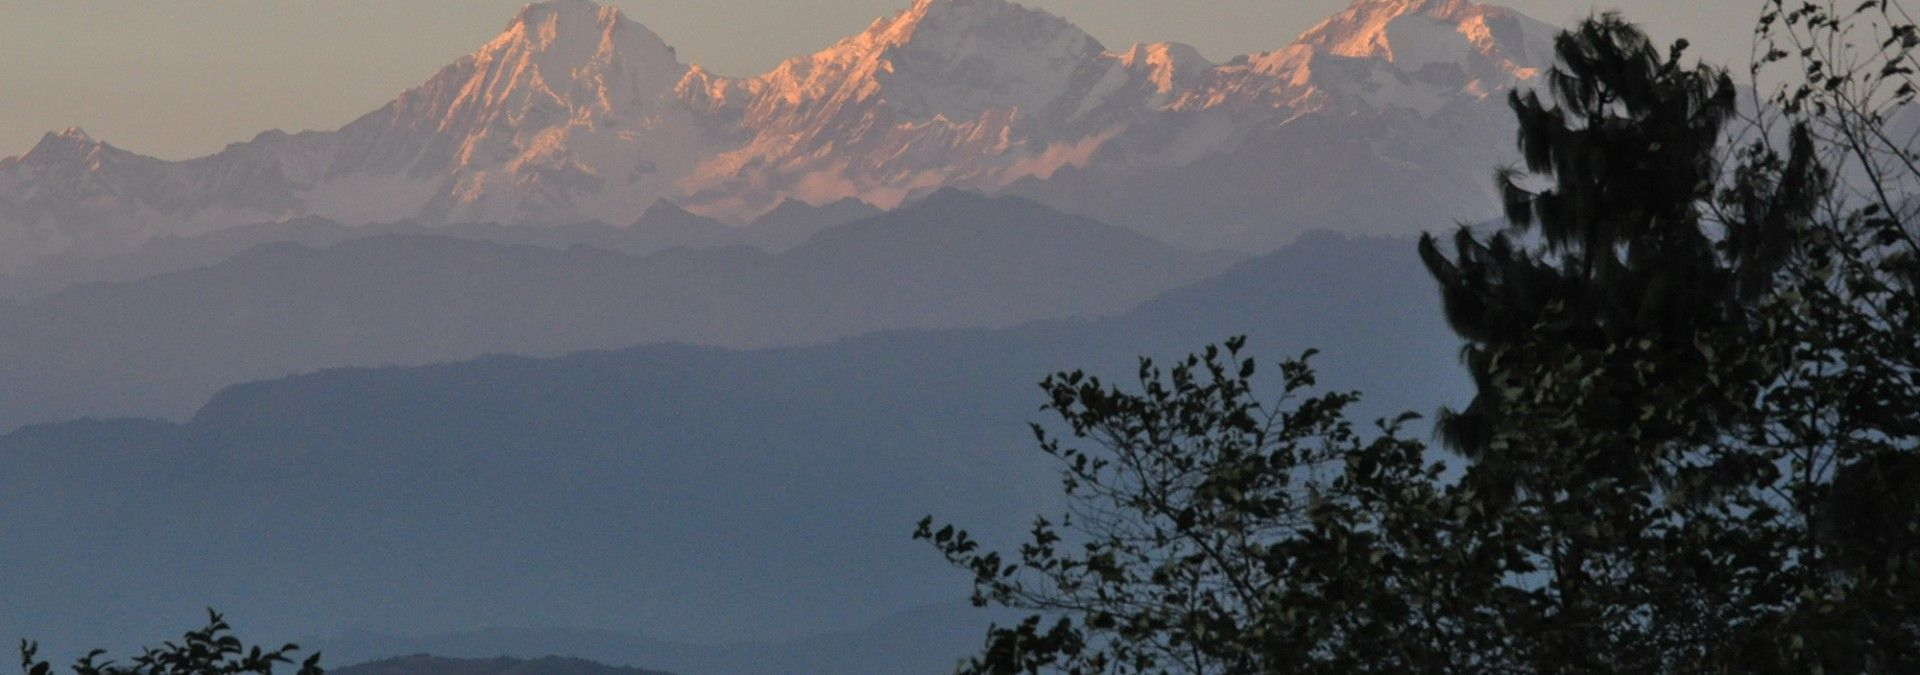 The_Langtang_Mountain_range_Nepal.jpg